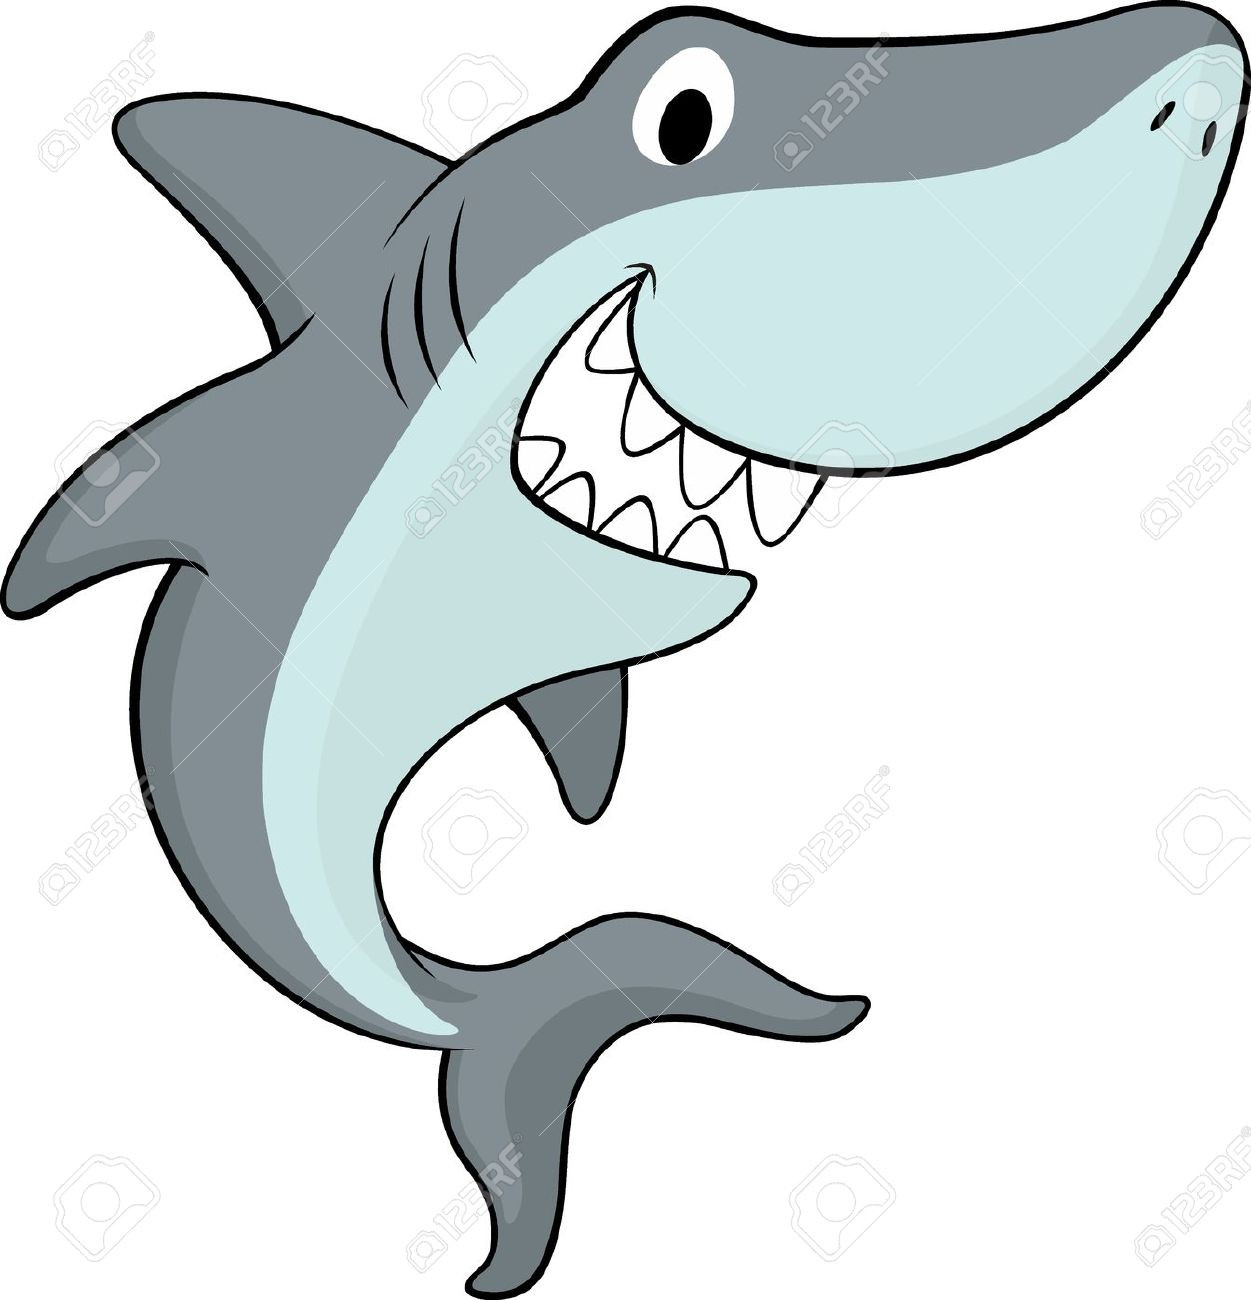 1251x1300 Friendly Shark Clipart Showy Clip Art Thatswhatsup